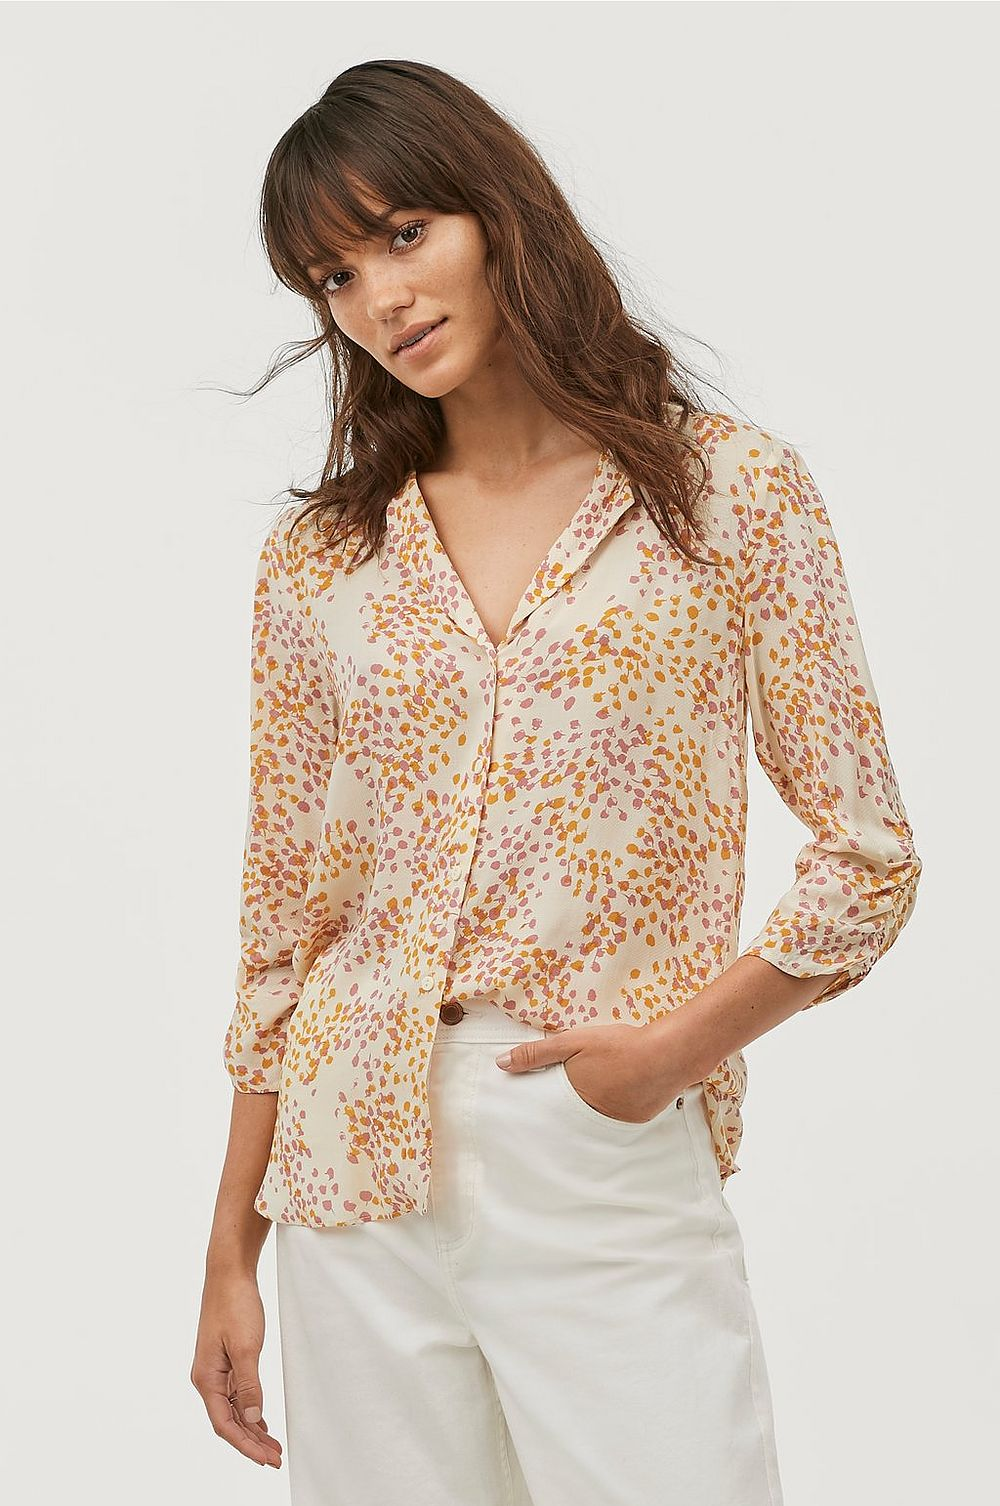 SECOND FEMALE - Dandelion Shirt online at PAYA boutique